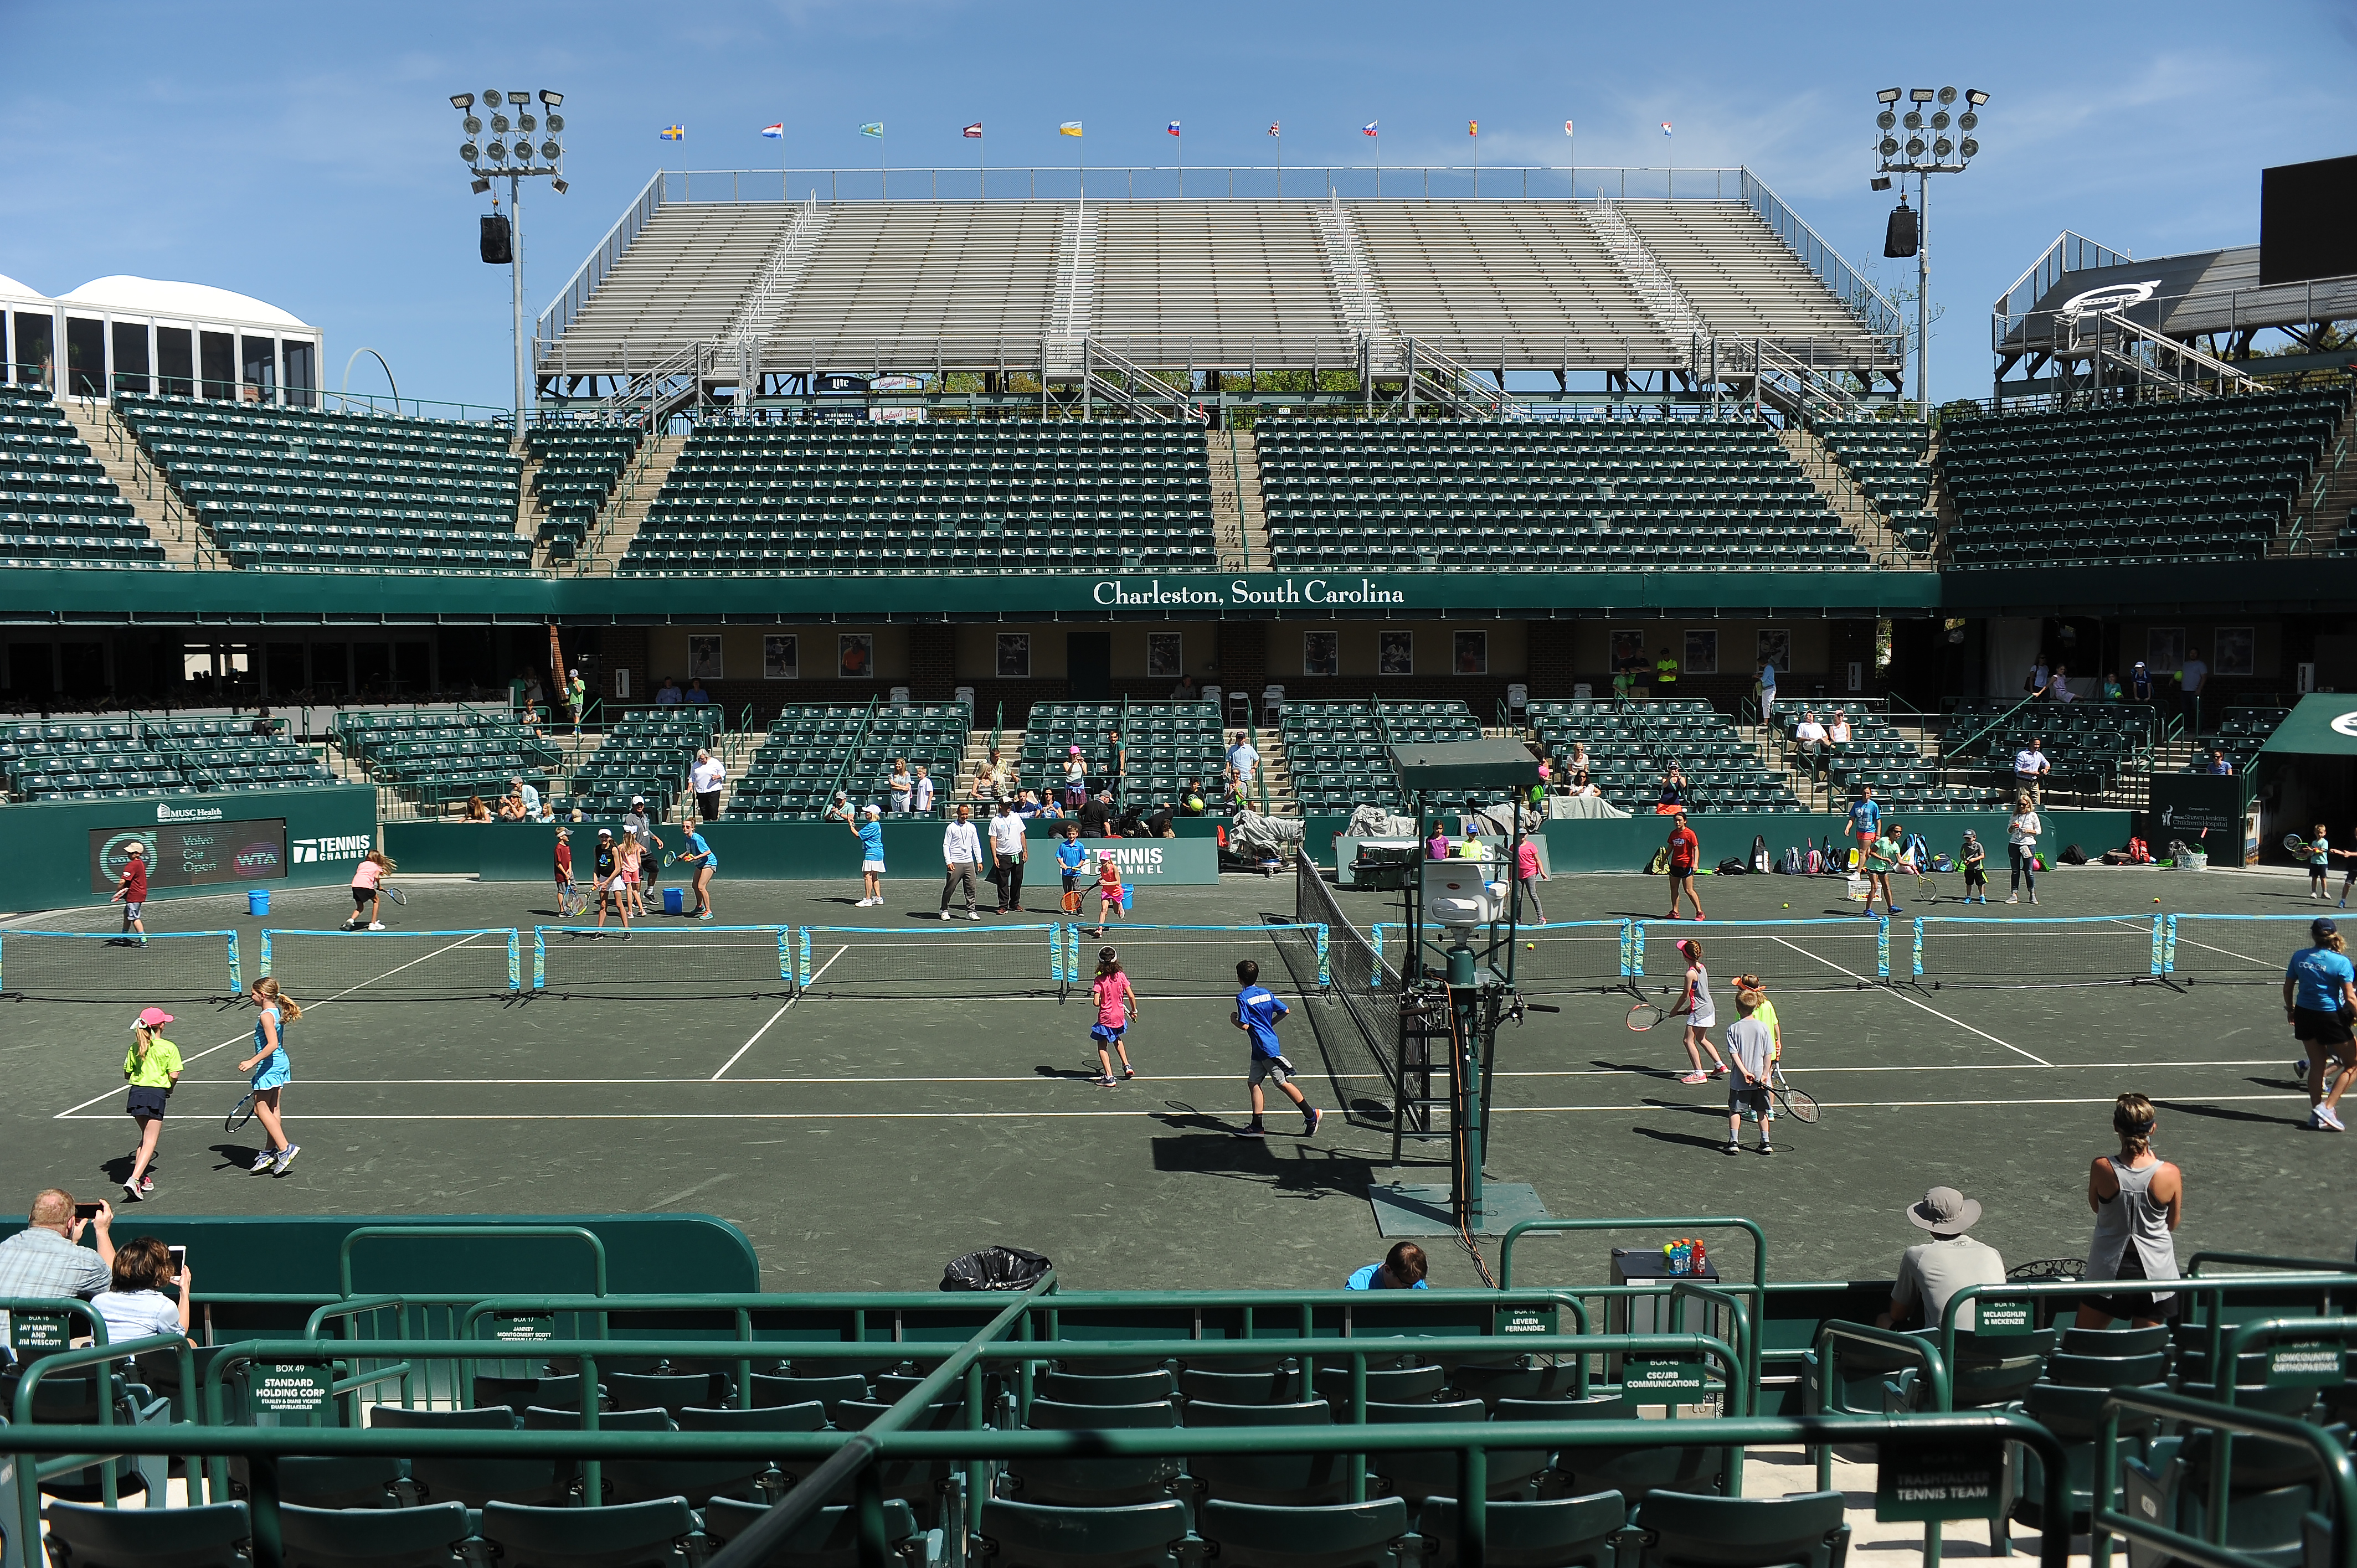 Young tennis players take a clinic on center court!